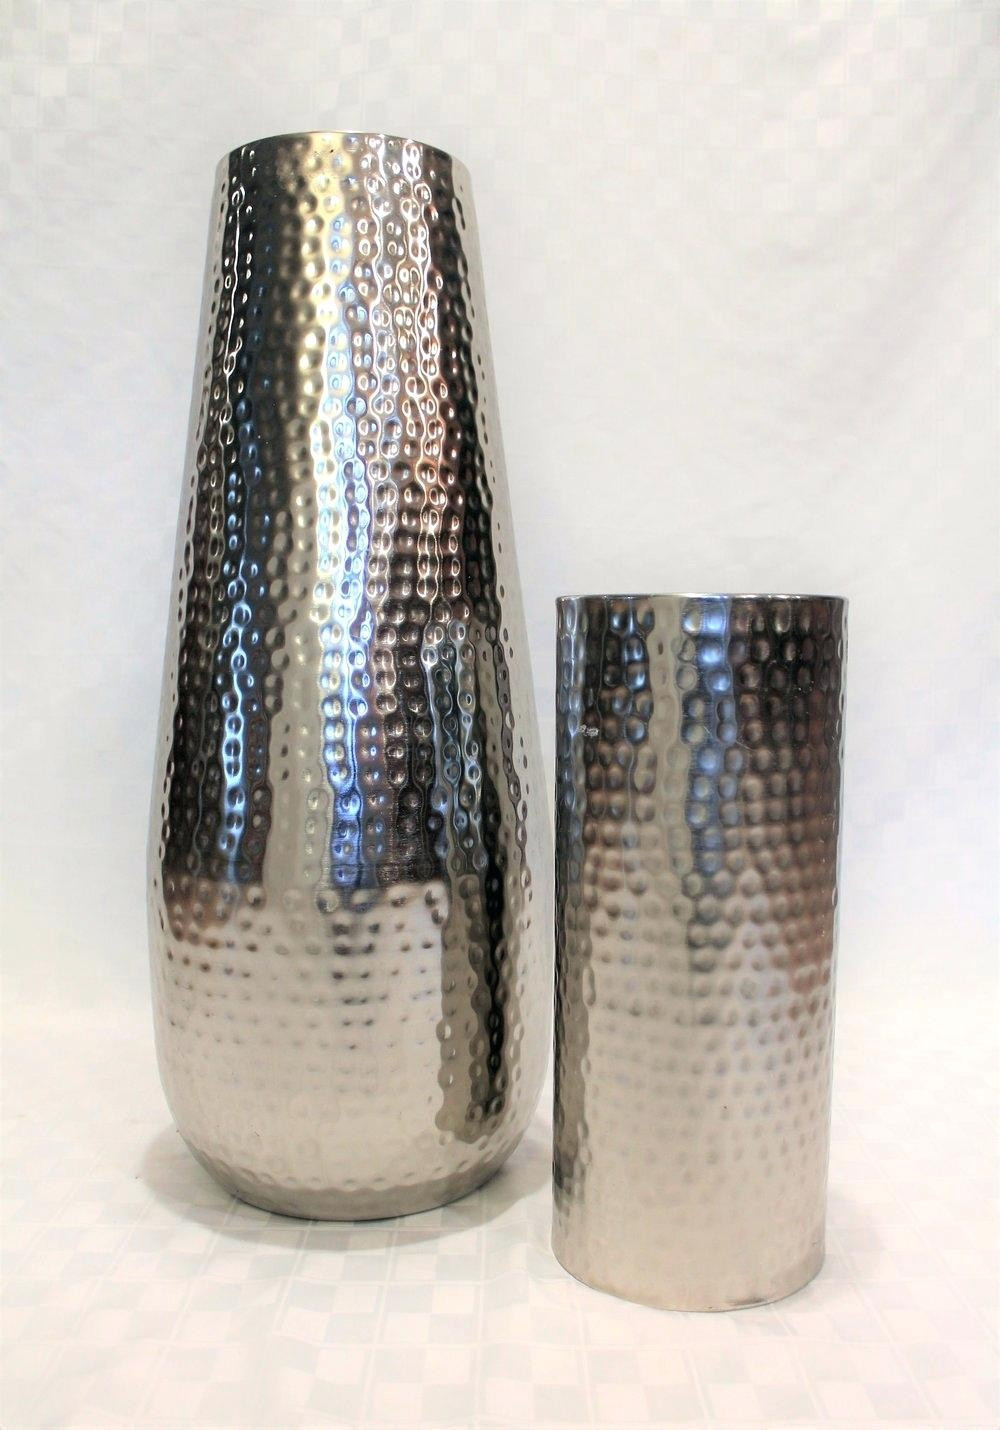 cheap trumpet vases wholesale of silver vases wholesale pandoraocharms us with regard to silver vases wholesale glass bulk tall flower fl org